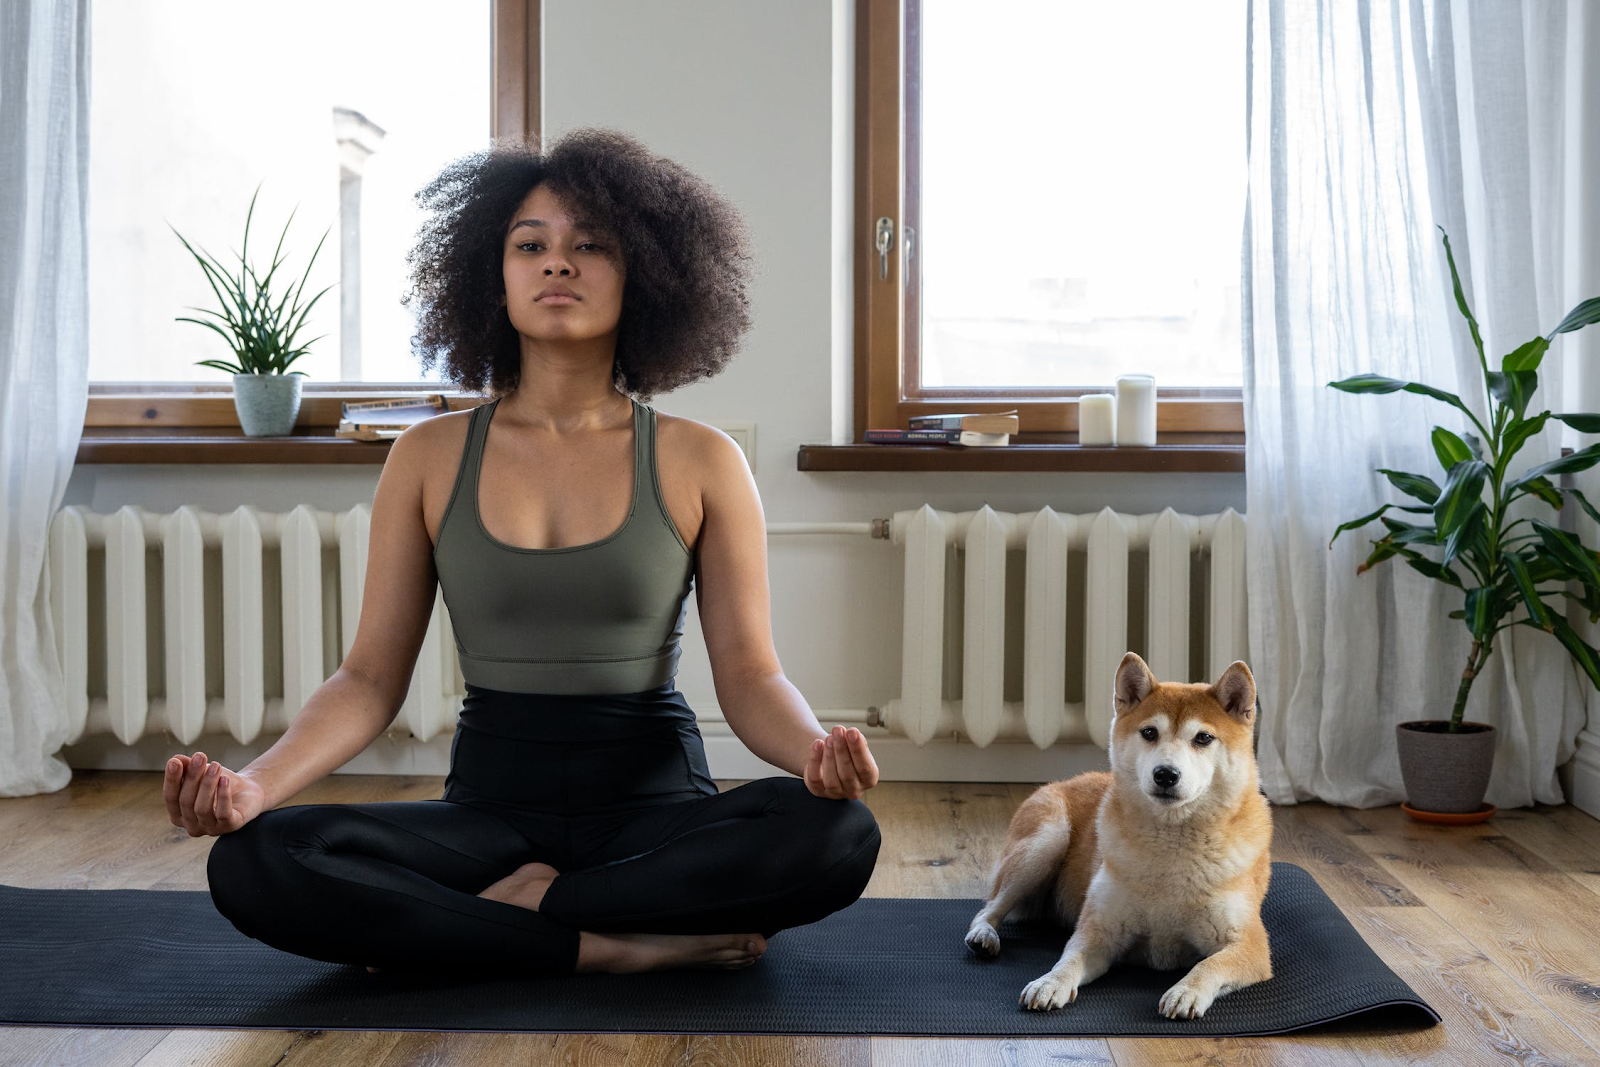 An image of a woman sitting cross-legged, meditating, with a dog sitting beside her on her yoga mat.